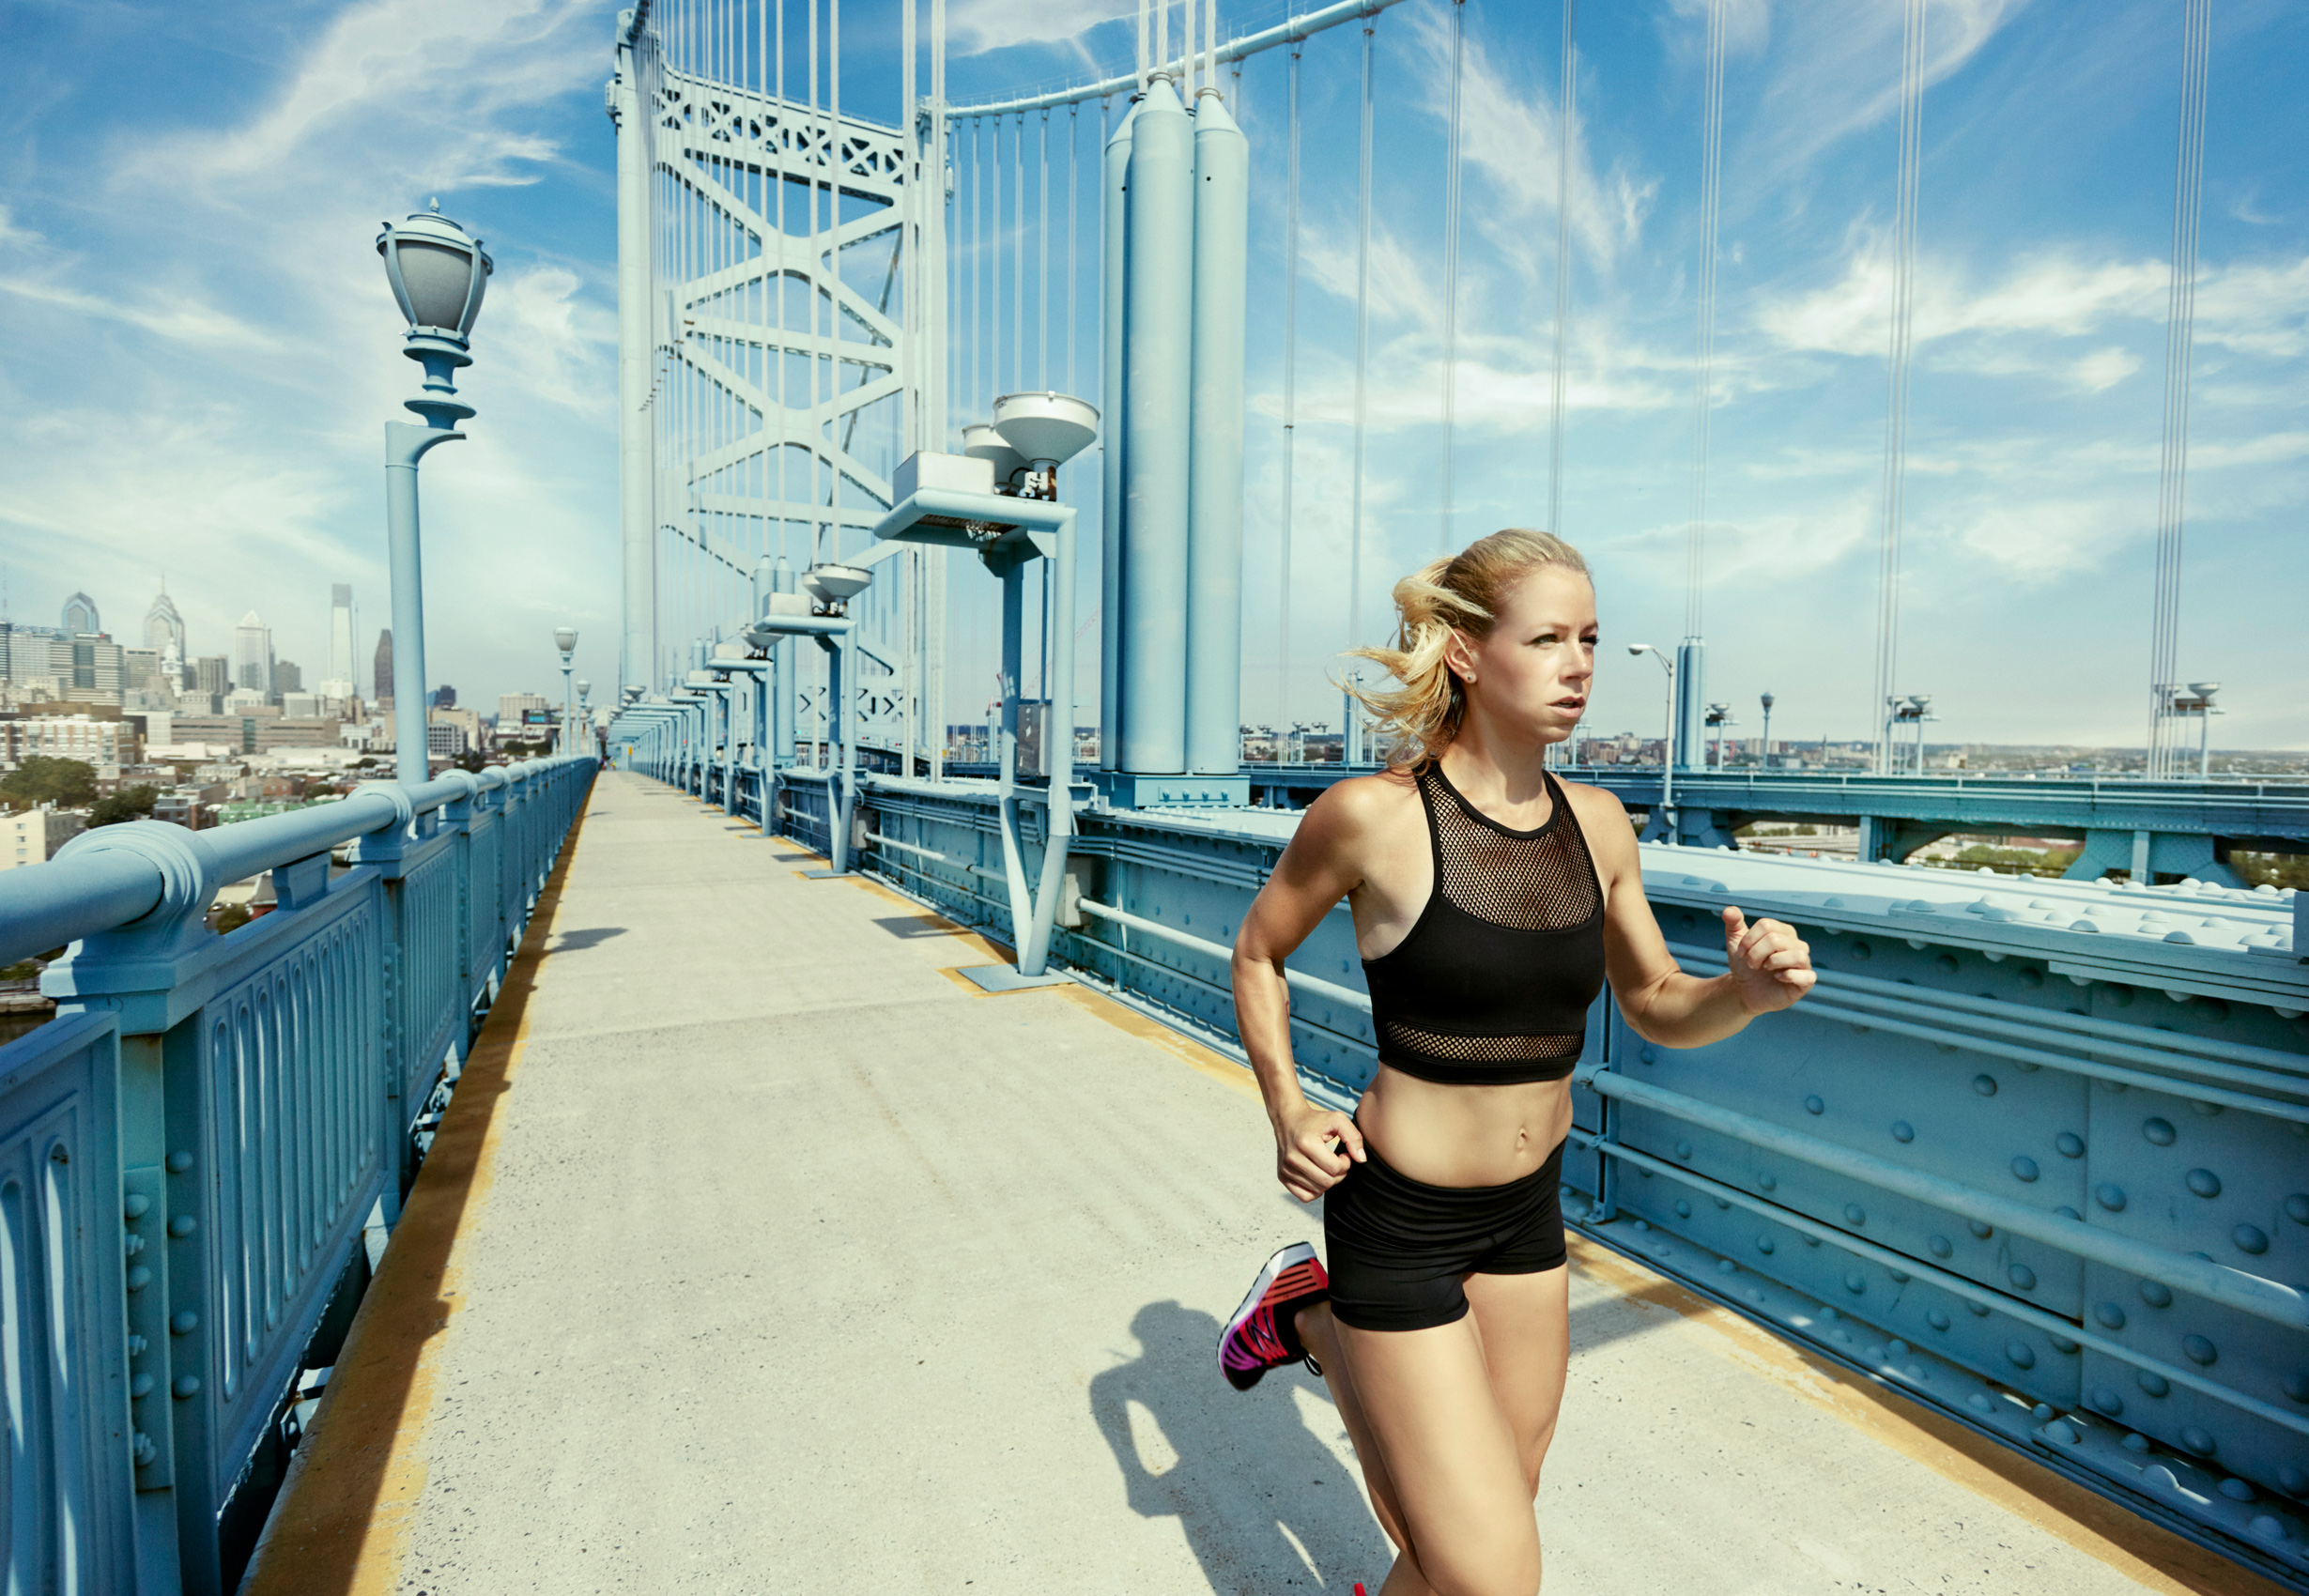 Ben Franklin Bridge - Runner